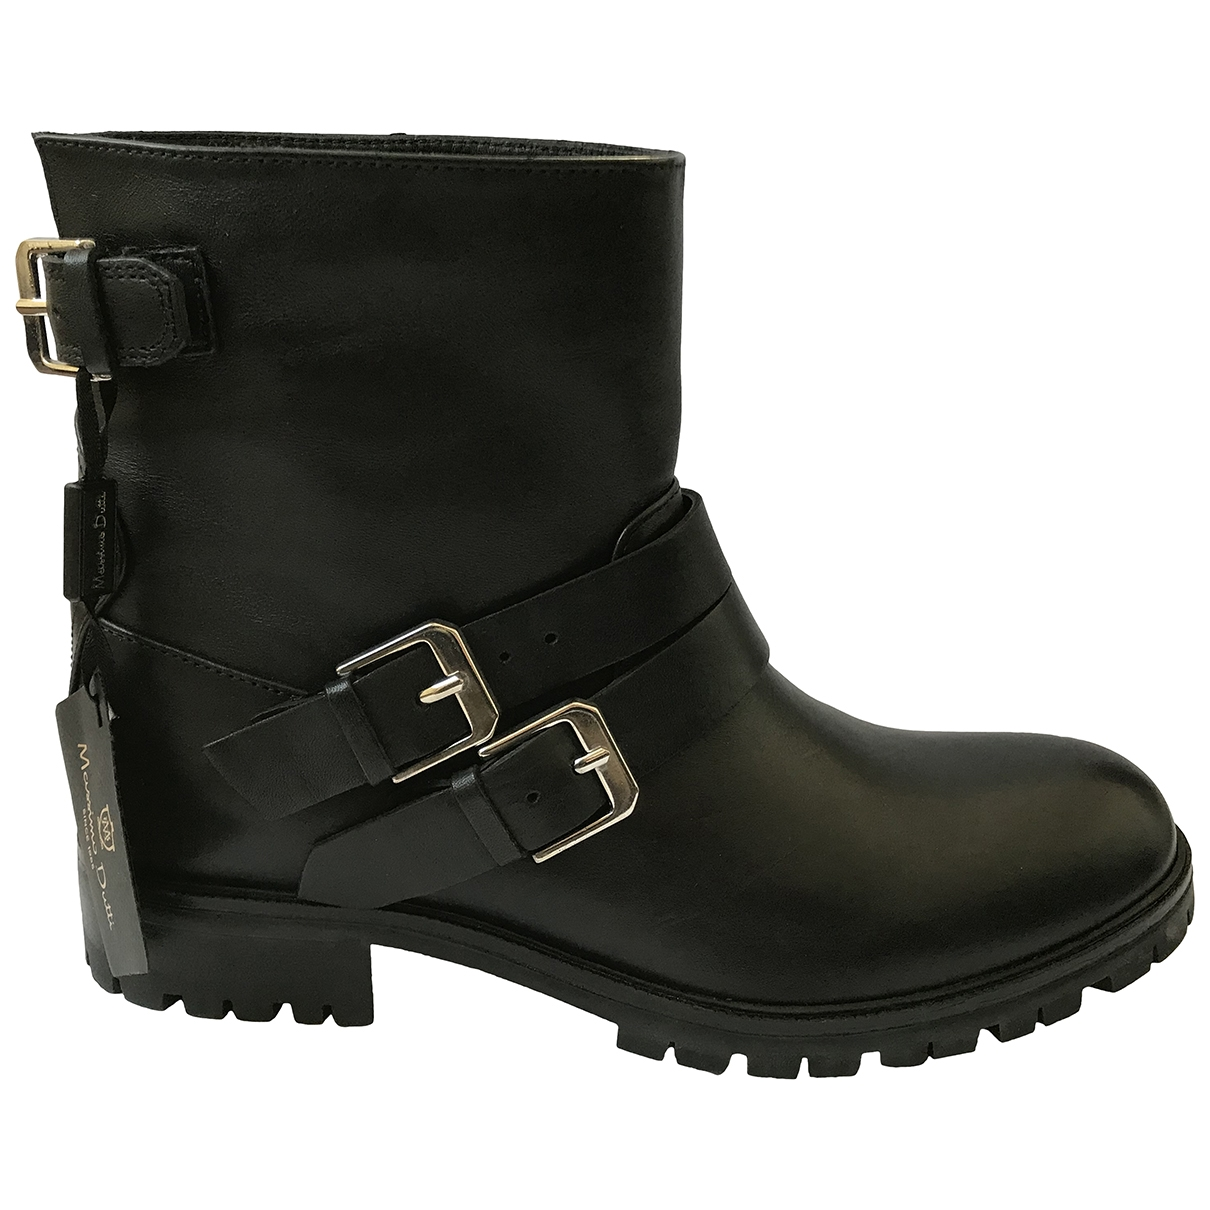 Massimo Dutti \N Black Leather Boots for Women 37 EU